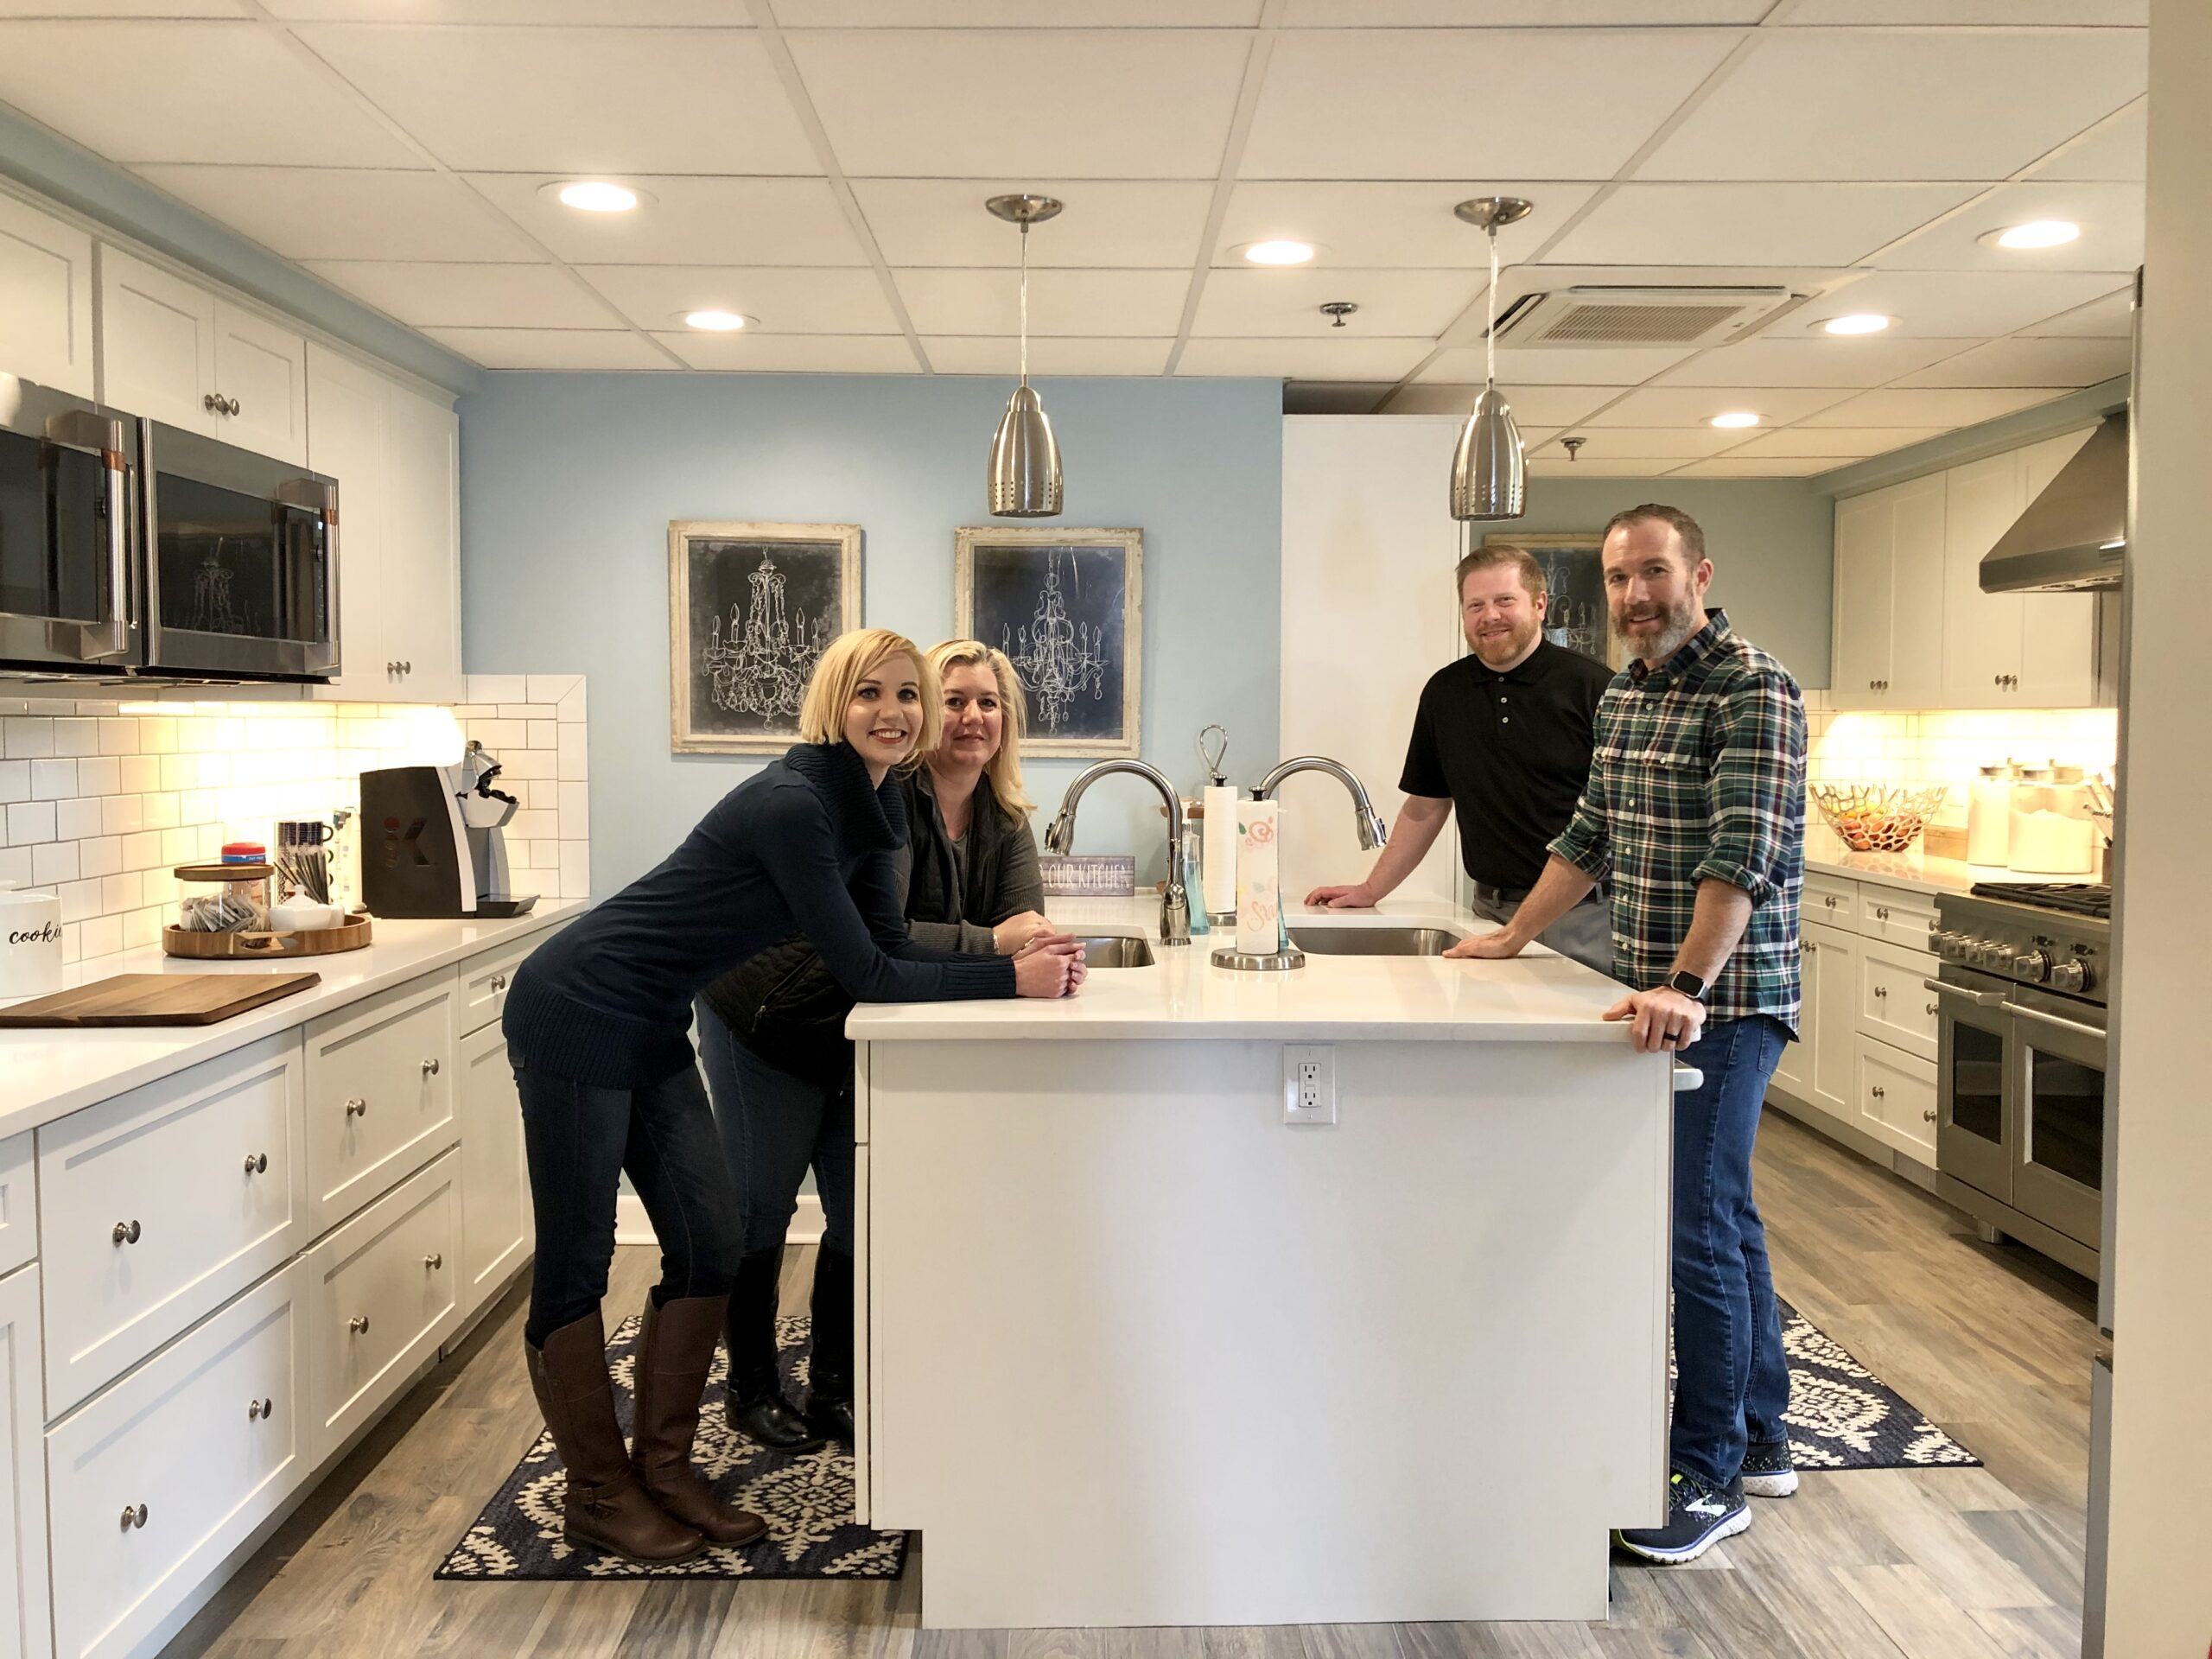 You are currently viewing Special Kitchen Renovation with the Ronald McDonald House – Scranton